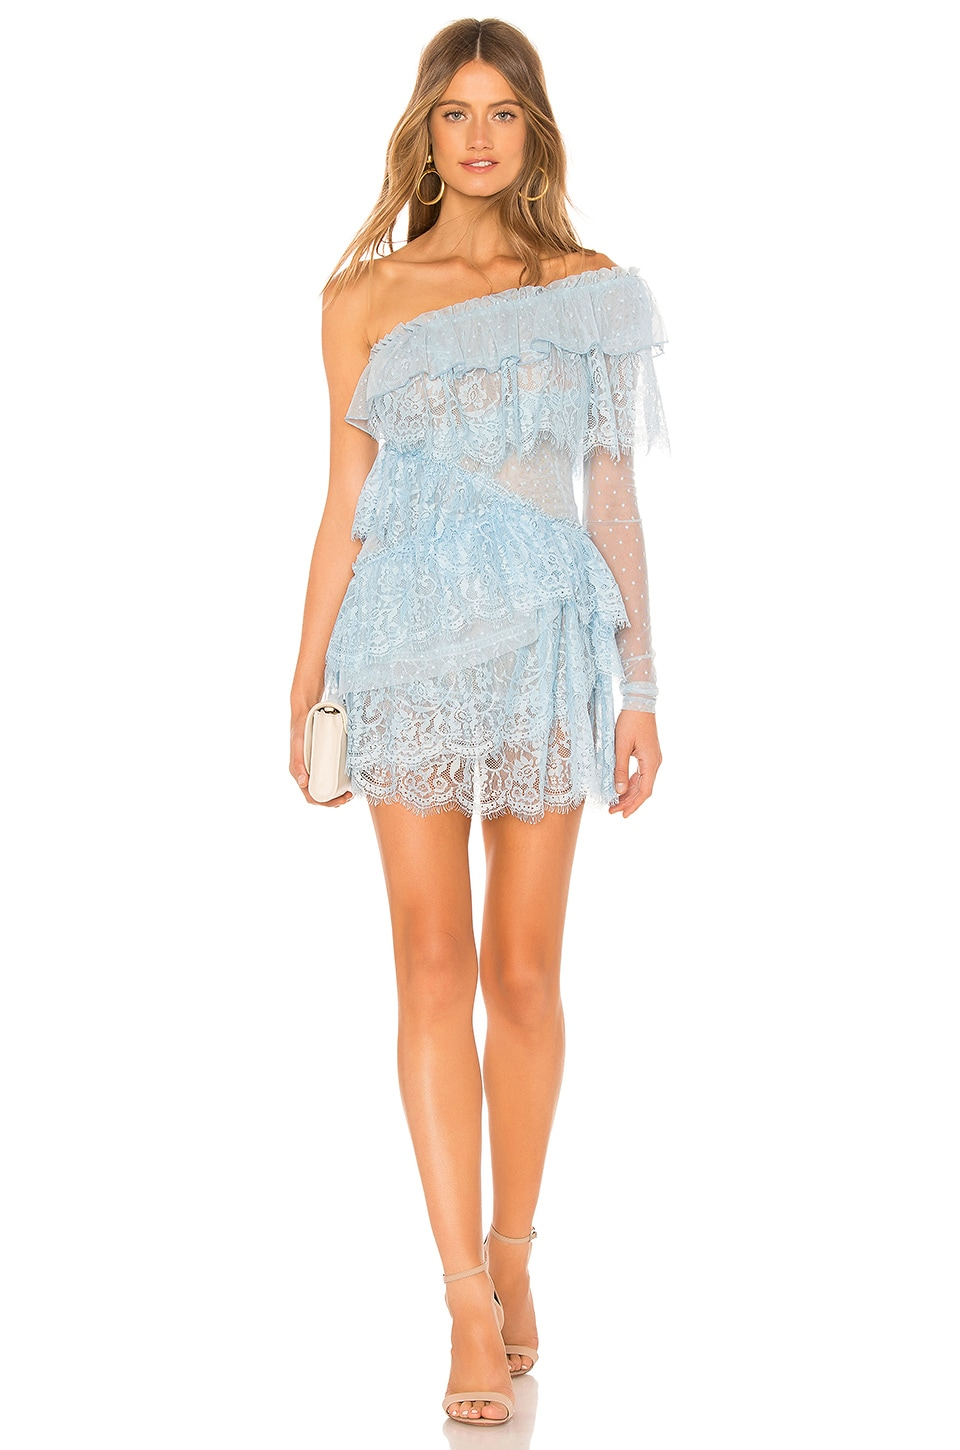 House of Harlow 1960 x REVOLVE Aries Dress in Baby Blue